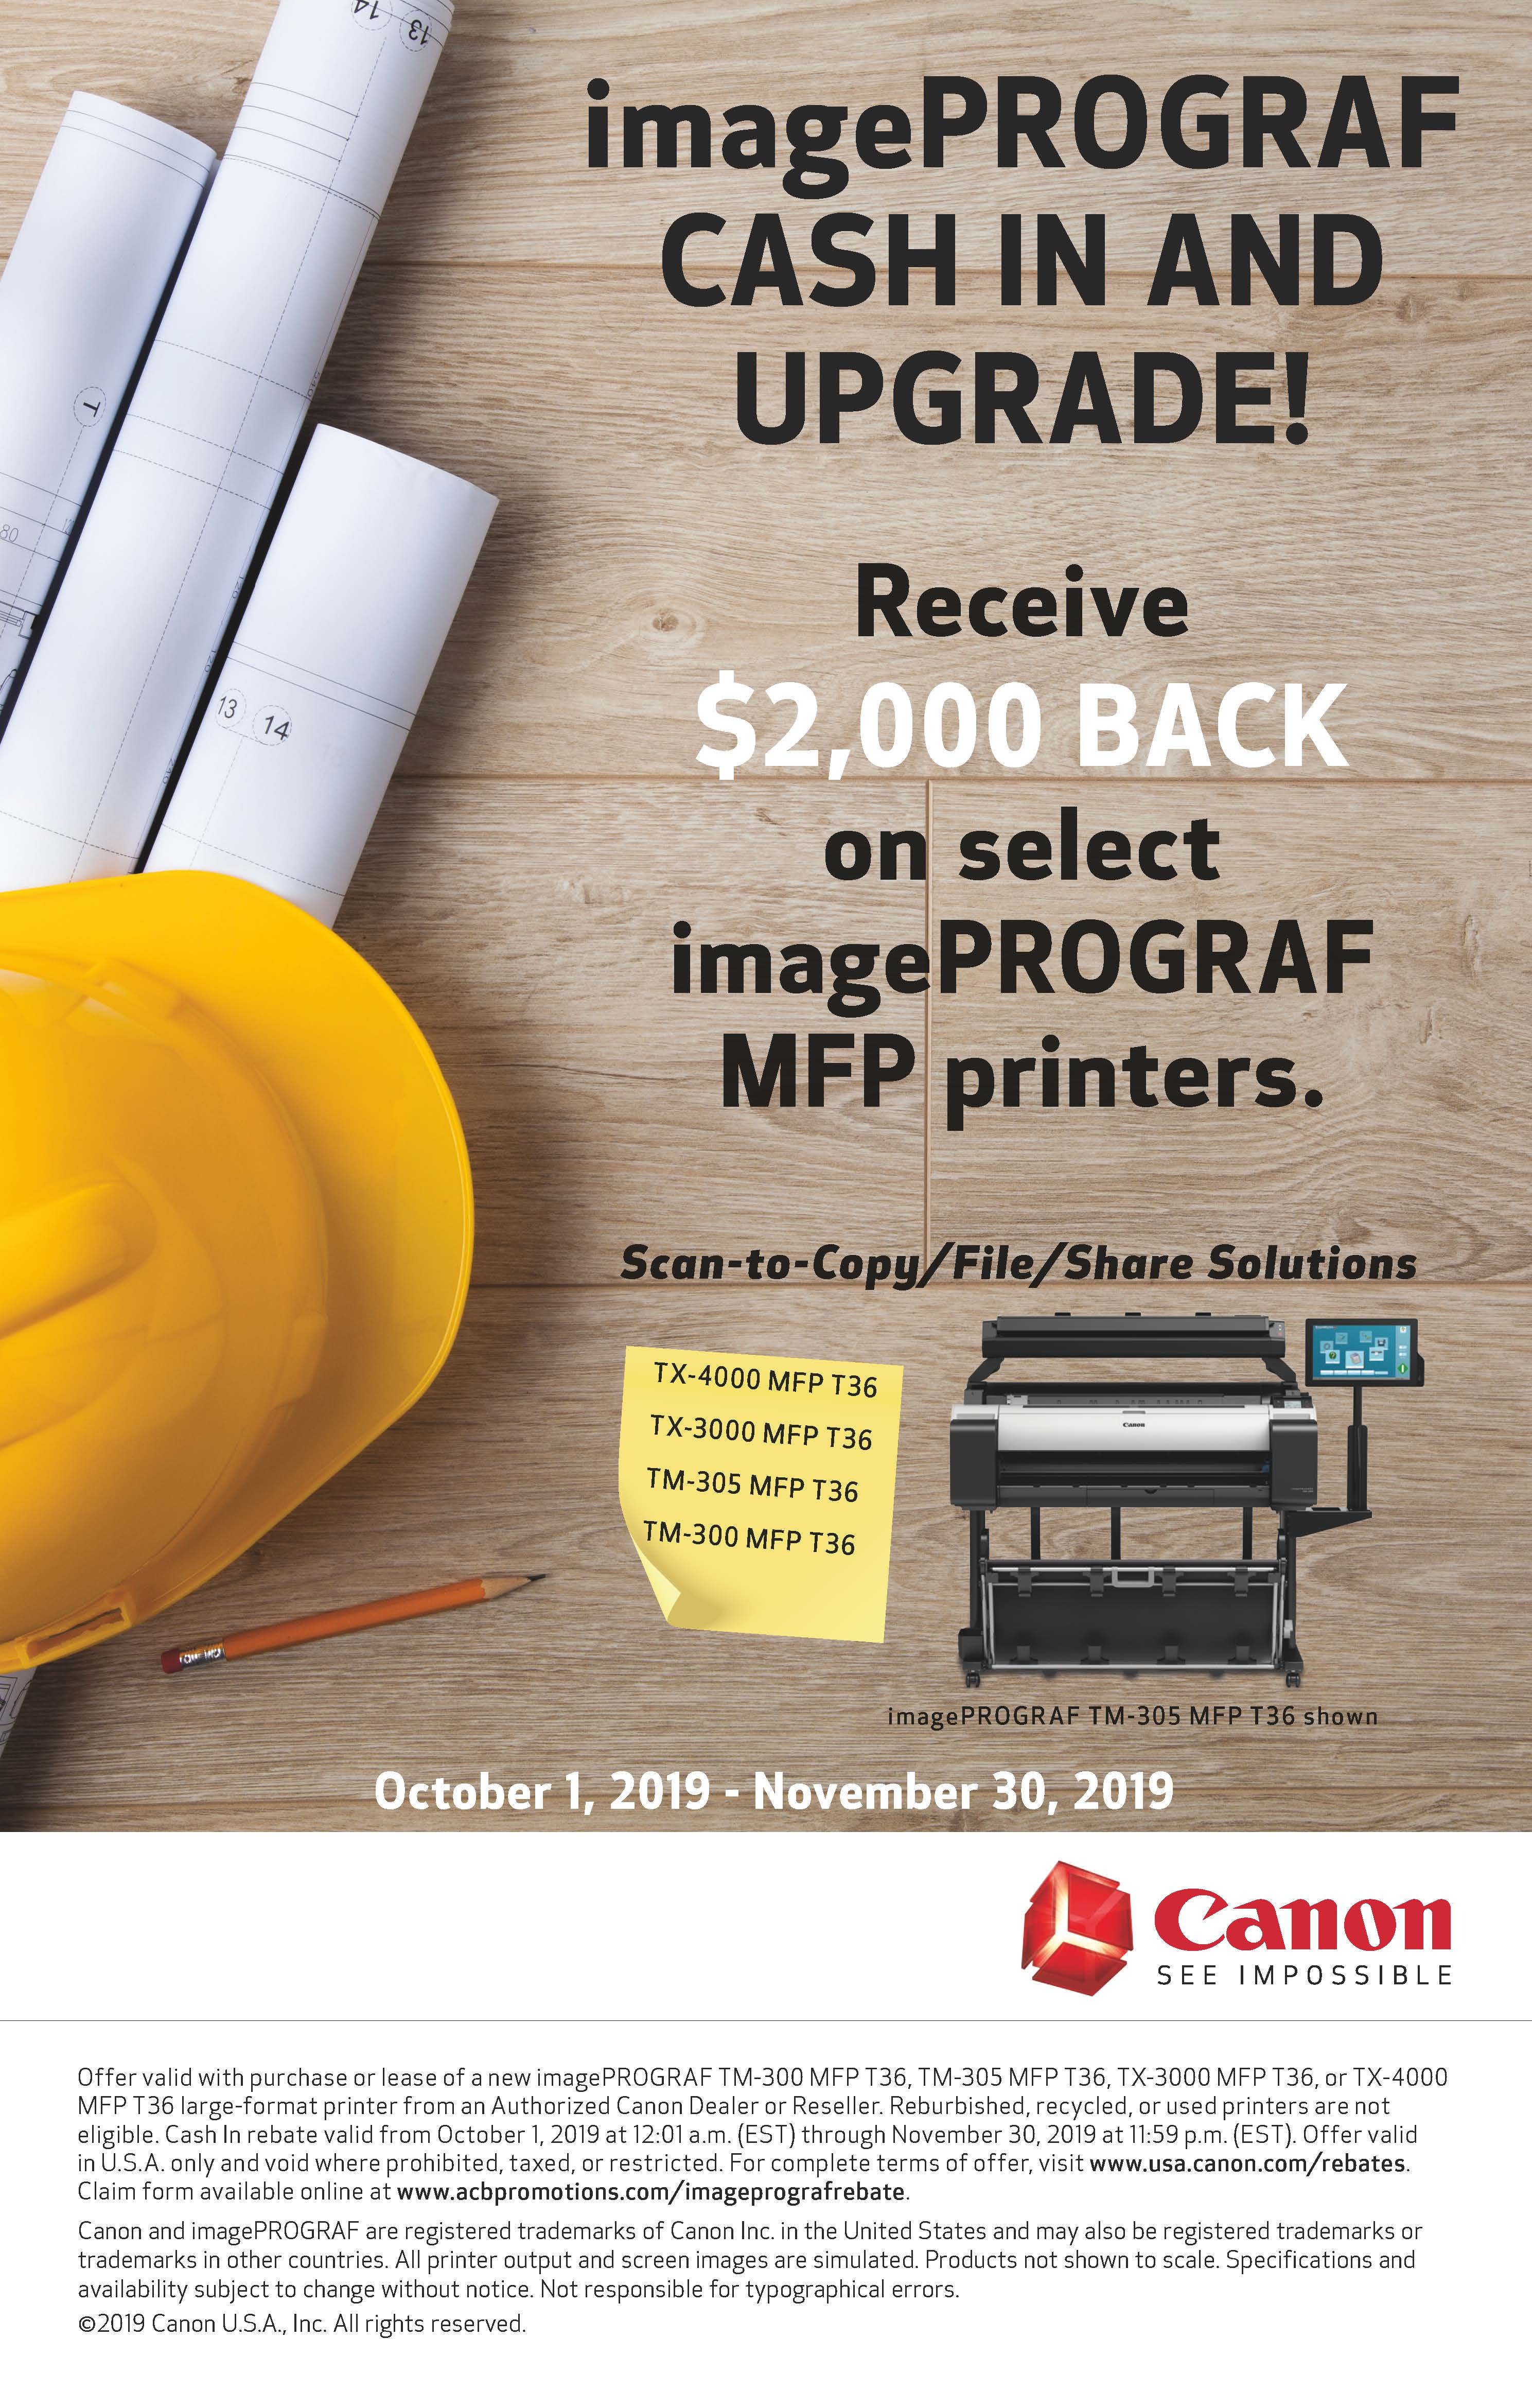 imageprograf-cash-in-and-upgrade-page-1.jpg